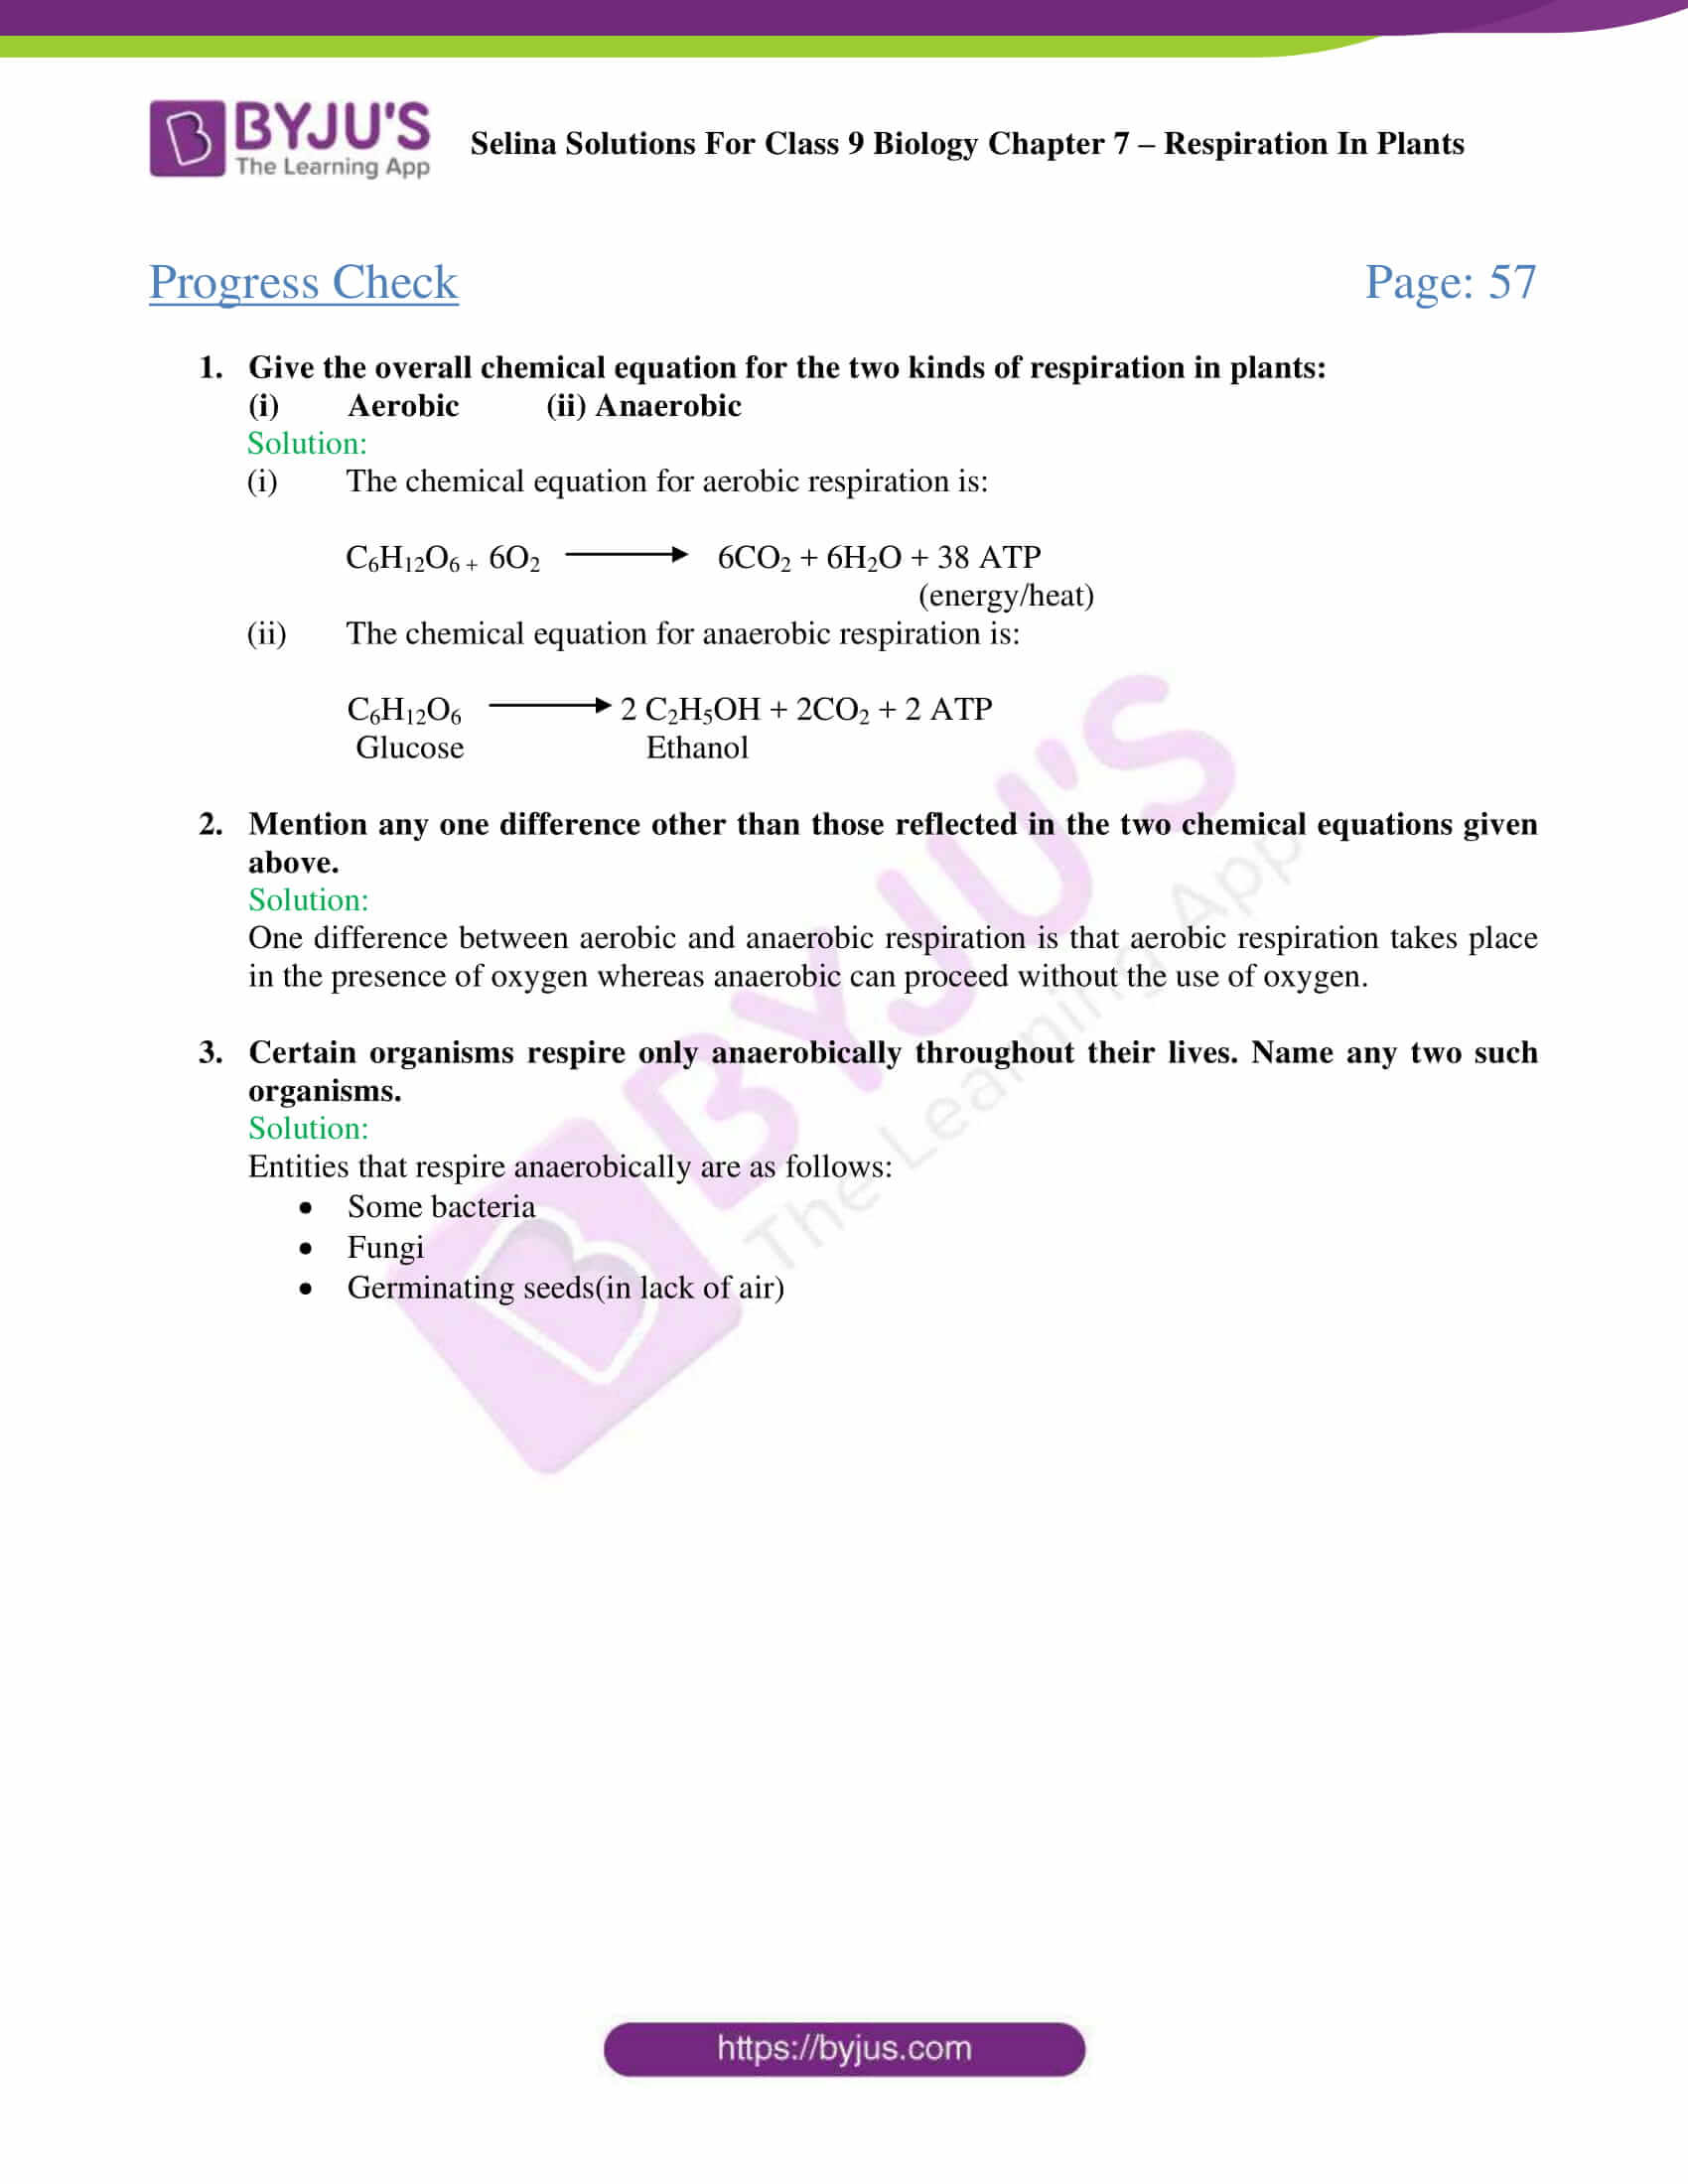 Selina Solutions For Class 9 Biology Chapter 7 Respiration In Plants part 02